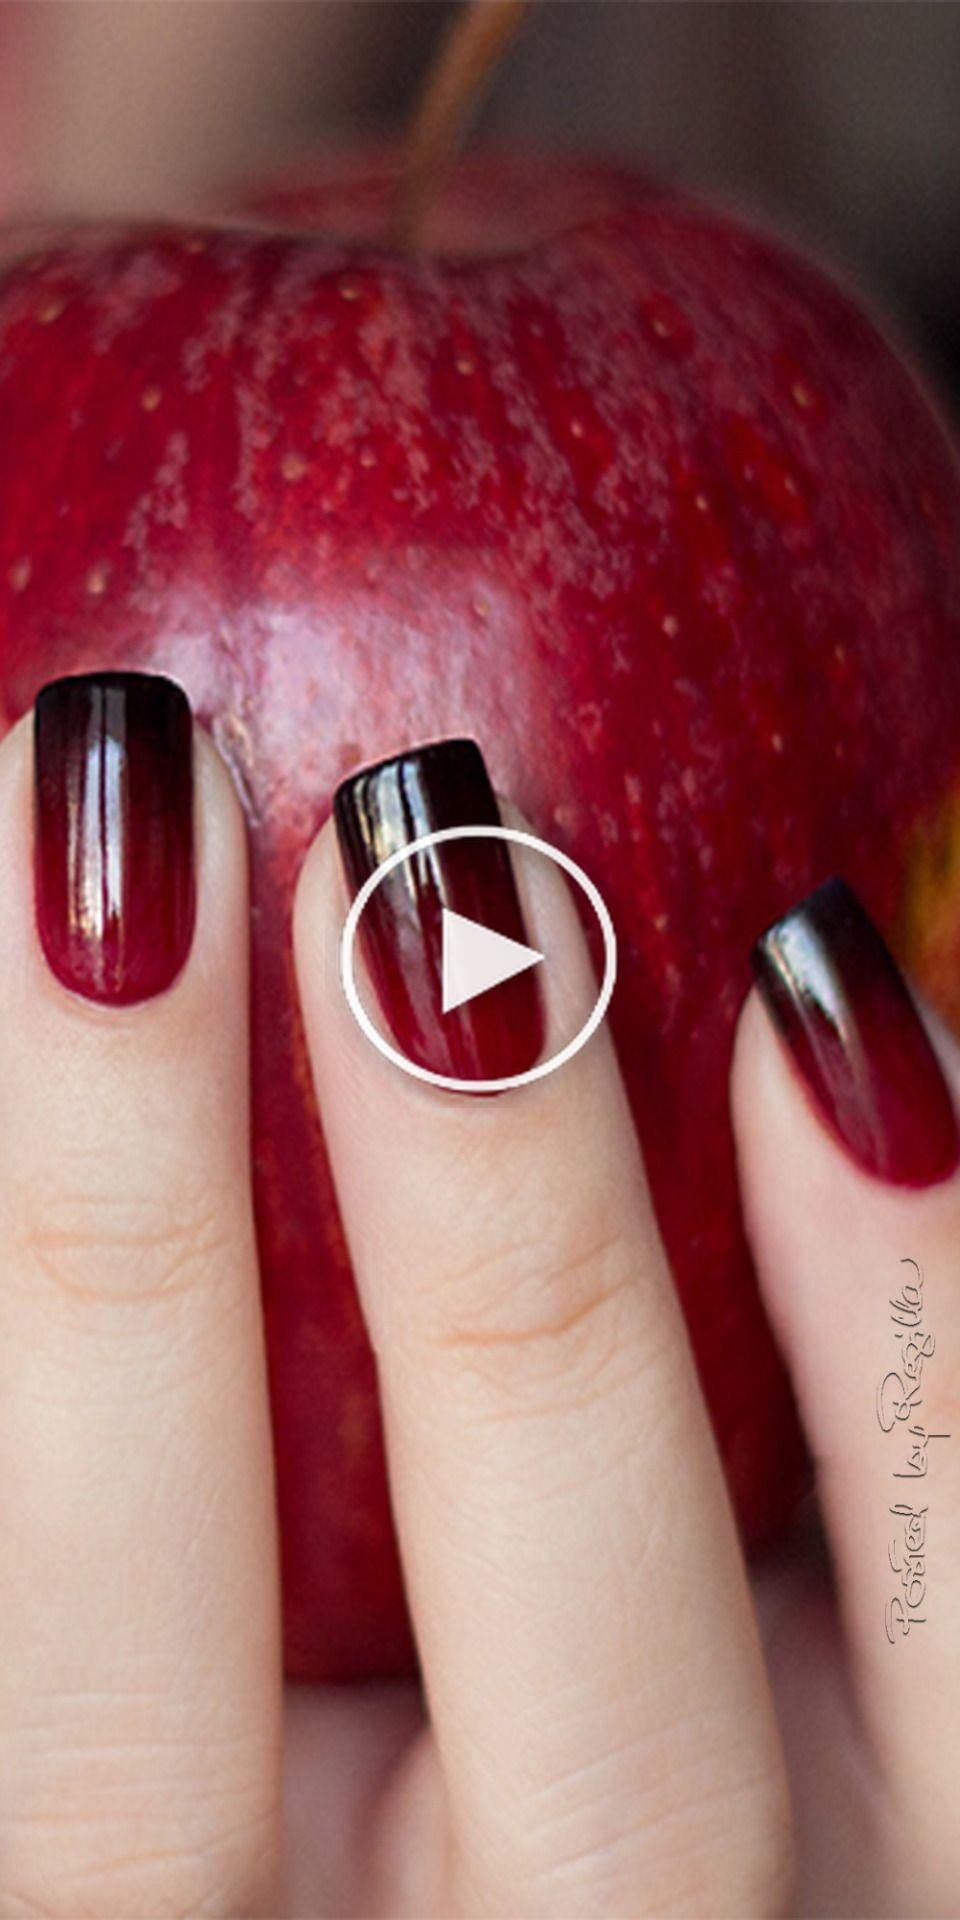 2019 List For 365 Days Of Nail Art Nail Ideas Pink To Red To Black Gradient Nail Designs Pinterest